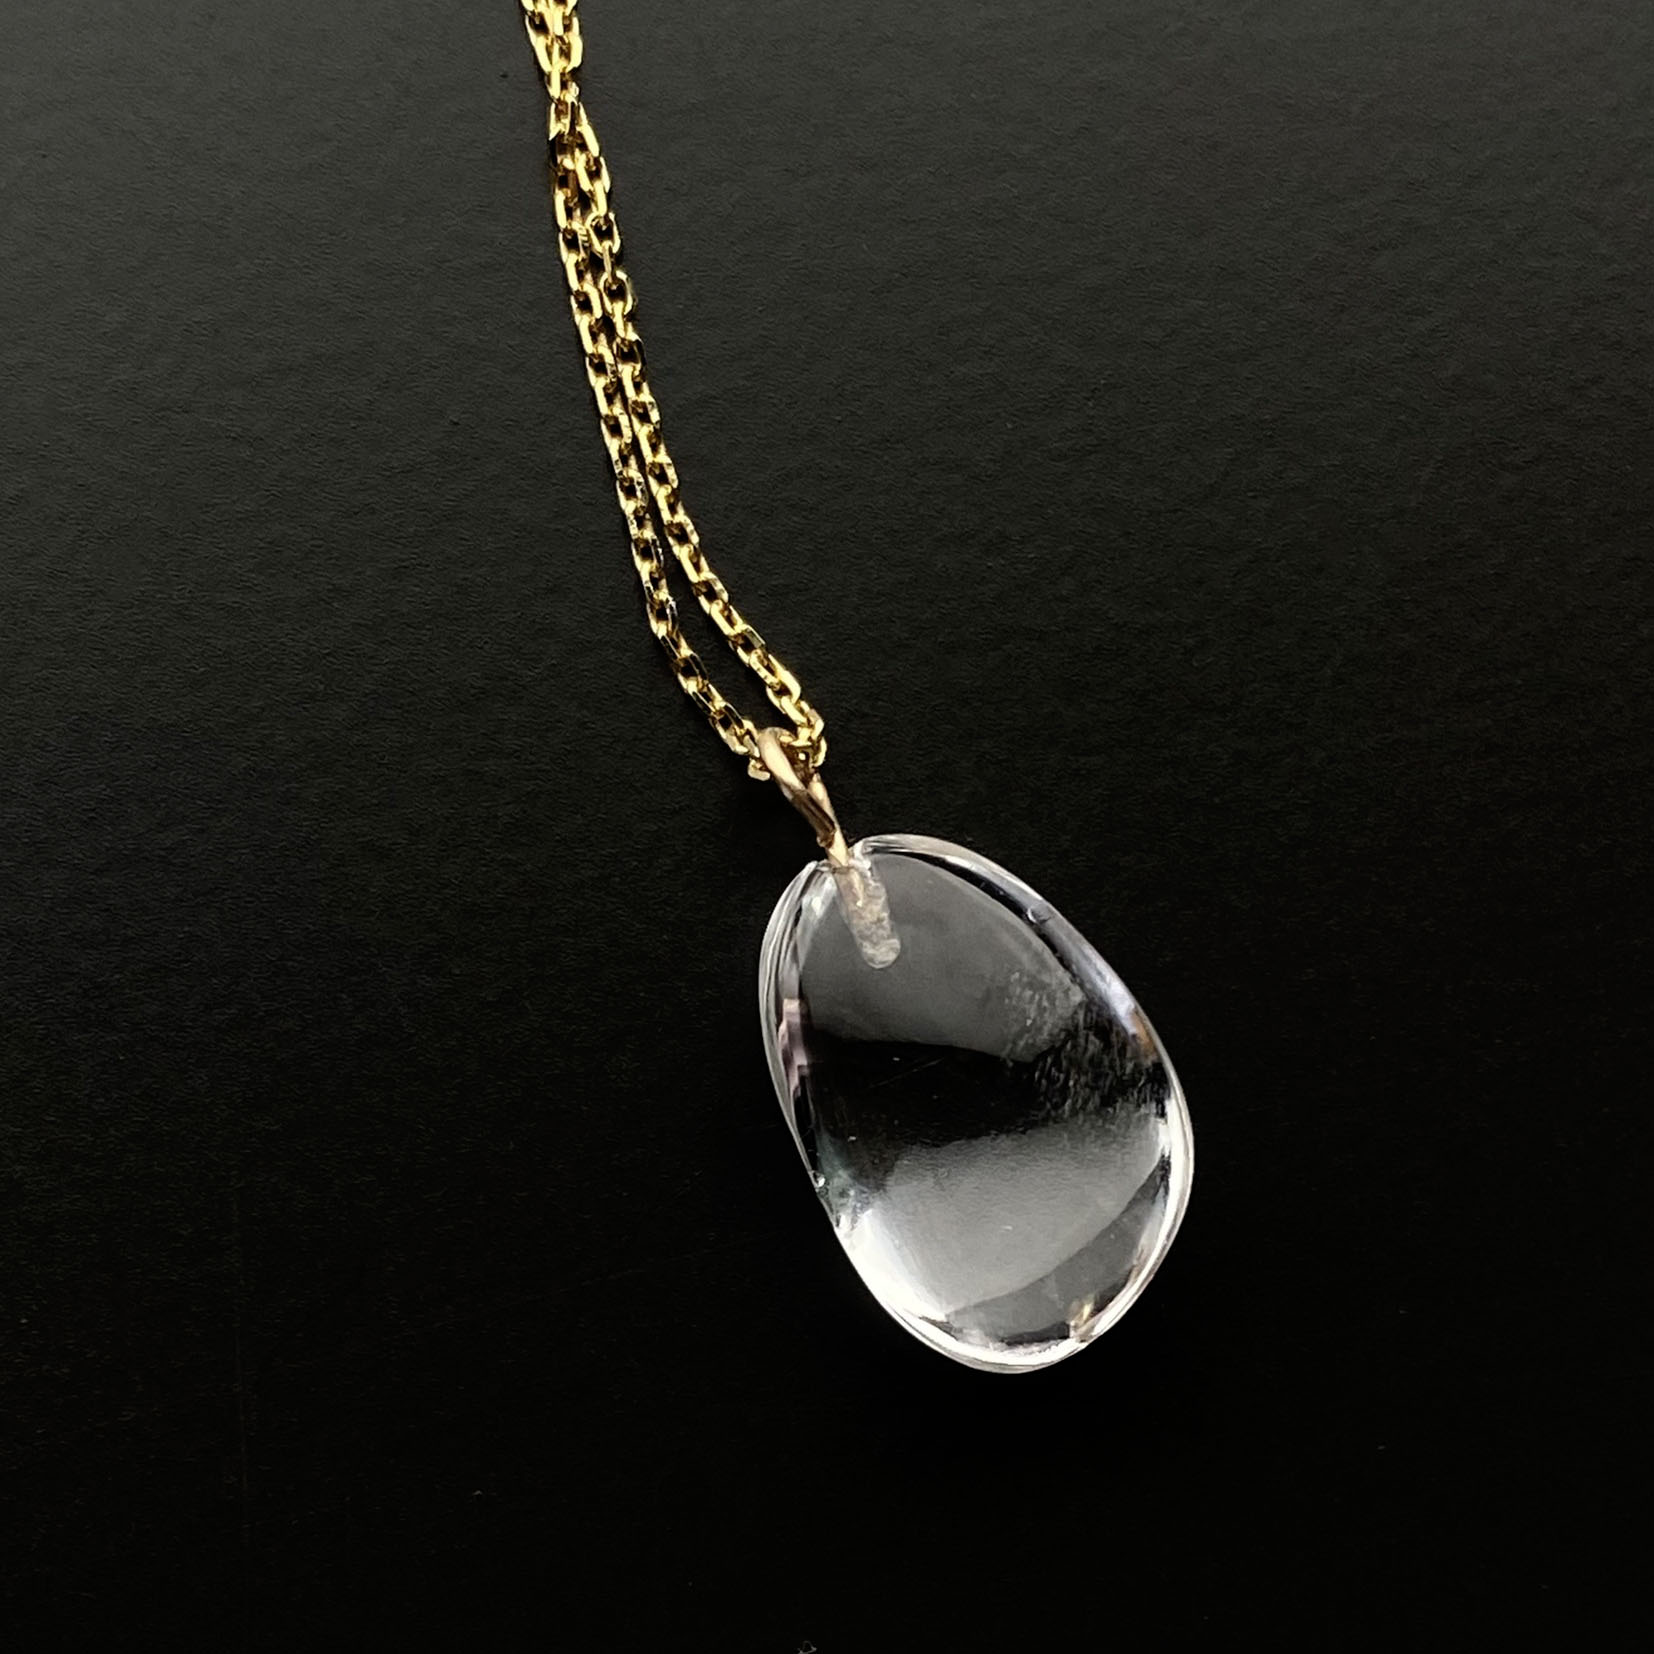 clear drop necklace 소재 선택가능